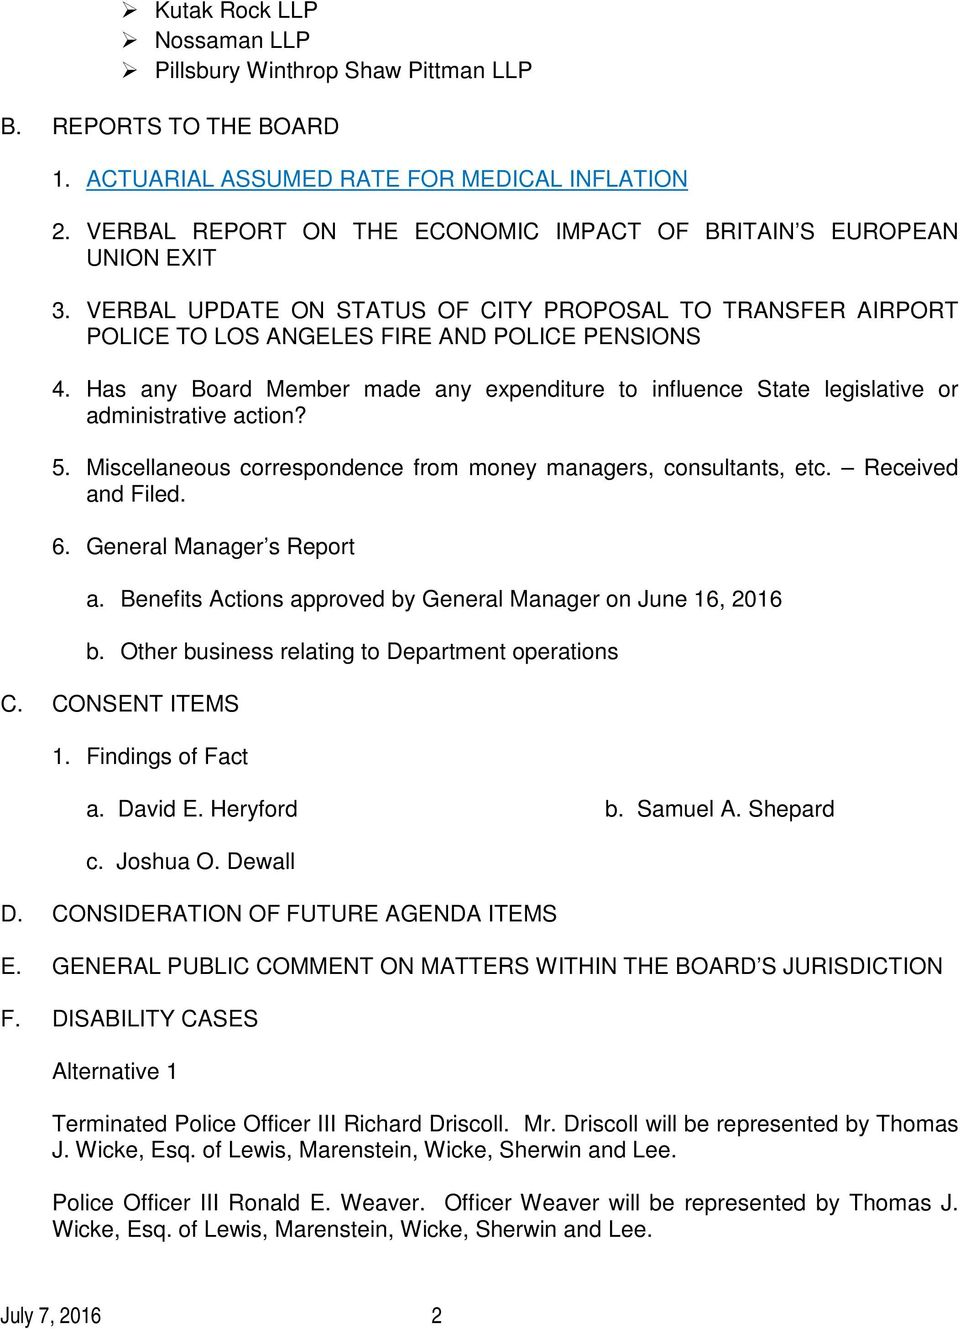 mr cagney report action expenditure pdf